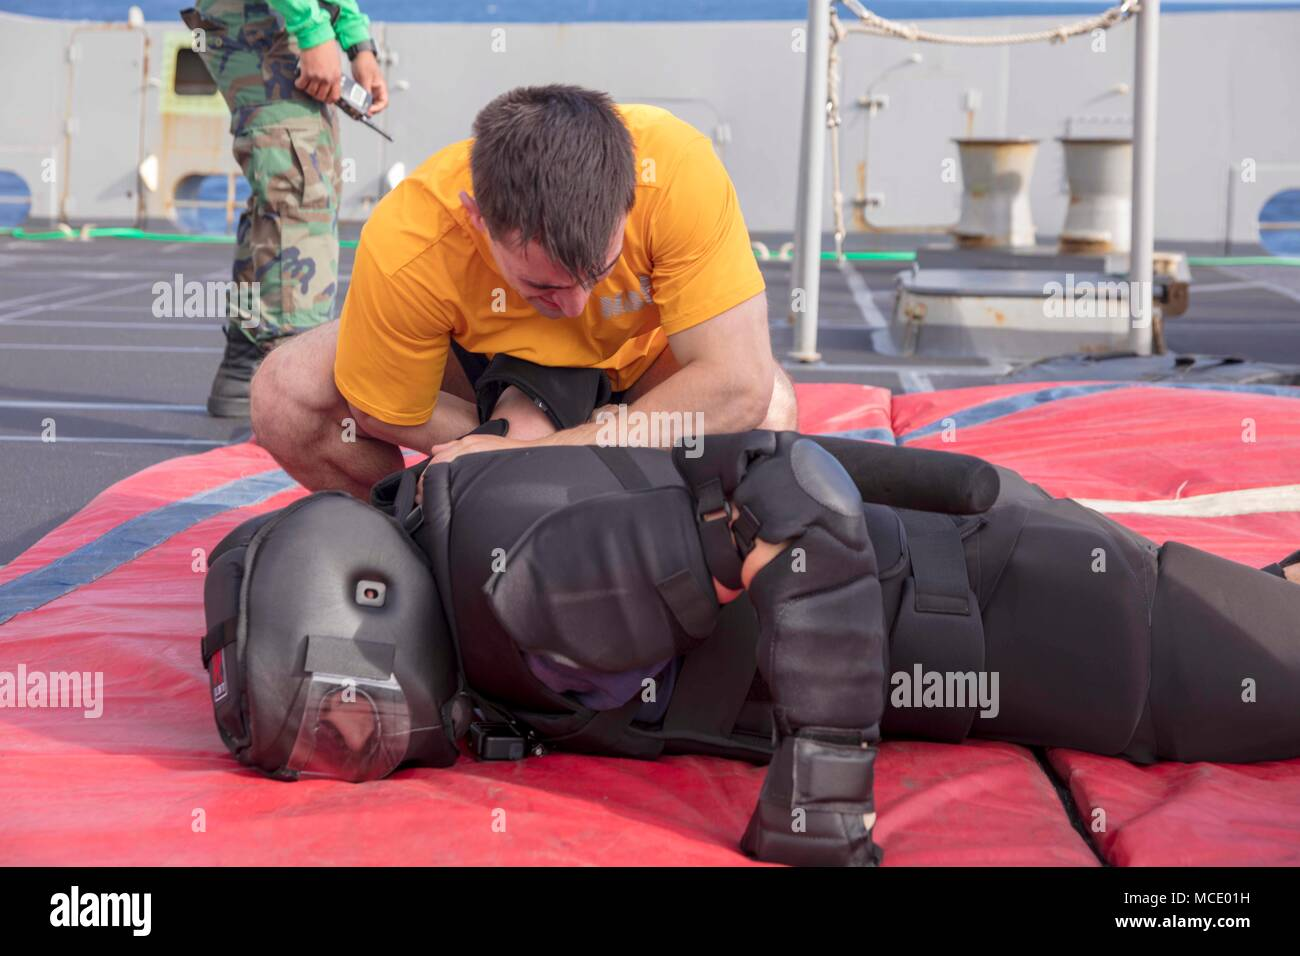 180223-N-GR168-0287 ATLANTIC OCEAN (Feb. 23, 2018) Ensign Dane Kozlosky, from Mantua, New Jersey, performs a mechanical ddvantage controlled hold take-down on Lt. Andrew Spilling, from St. Louis, during security reaction force basic training on the fo'c'sle of the San Antonio-class amphibious transport dock ship USS New York (LPD 21) Feb. 23, 2018. New York, homeported in Mayport, Florida, is conducting naval operations in the U.S. 6th Fleet area of operations. (U.S. Navy photo by Mass Communication Specialist 2nd Class Lyle Wilkie/Released) - Stock Image